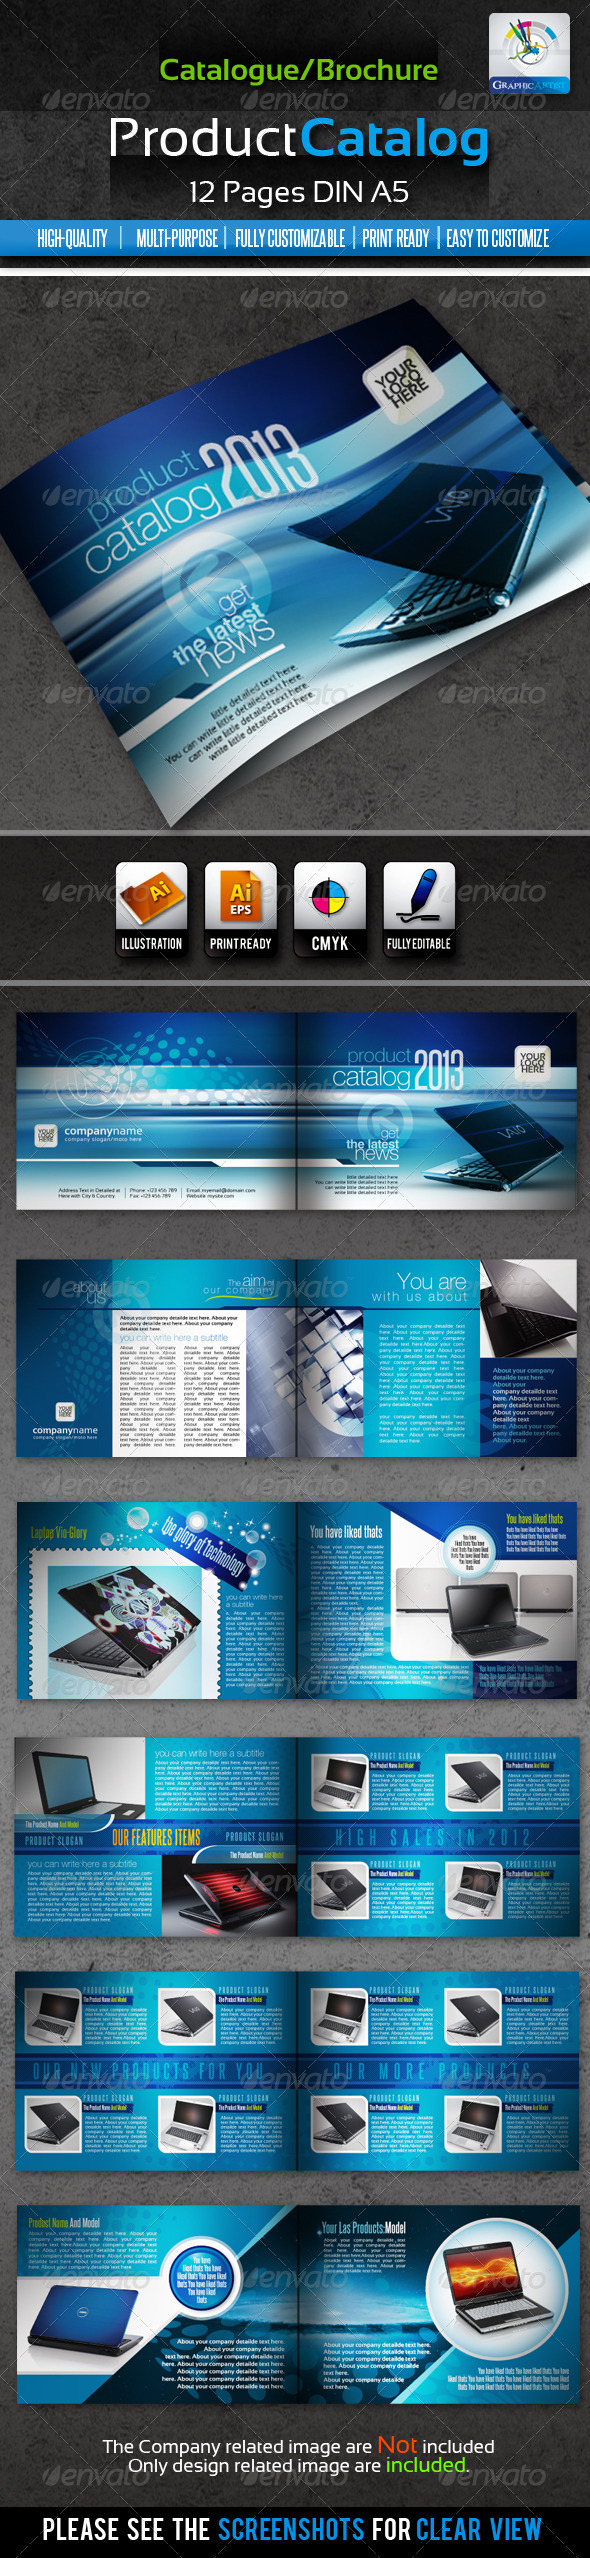 Corporate Product Catalogue/Brochure 12pages - Catalogs Brochures